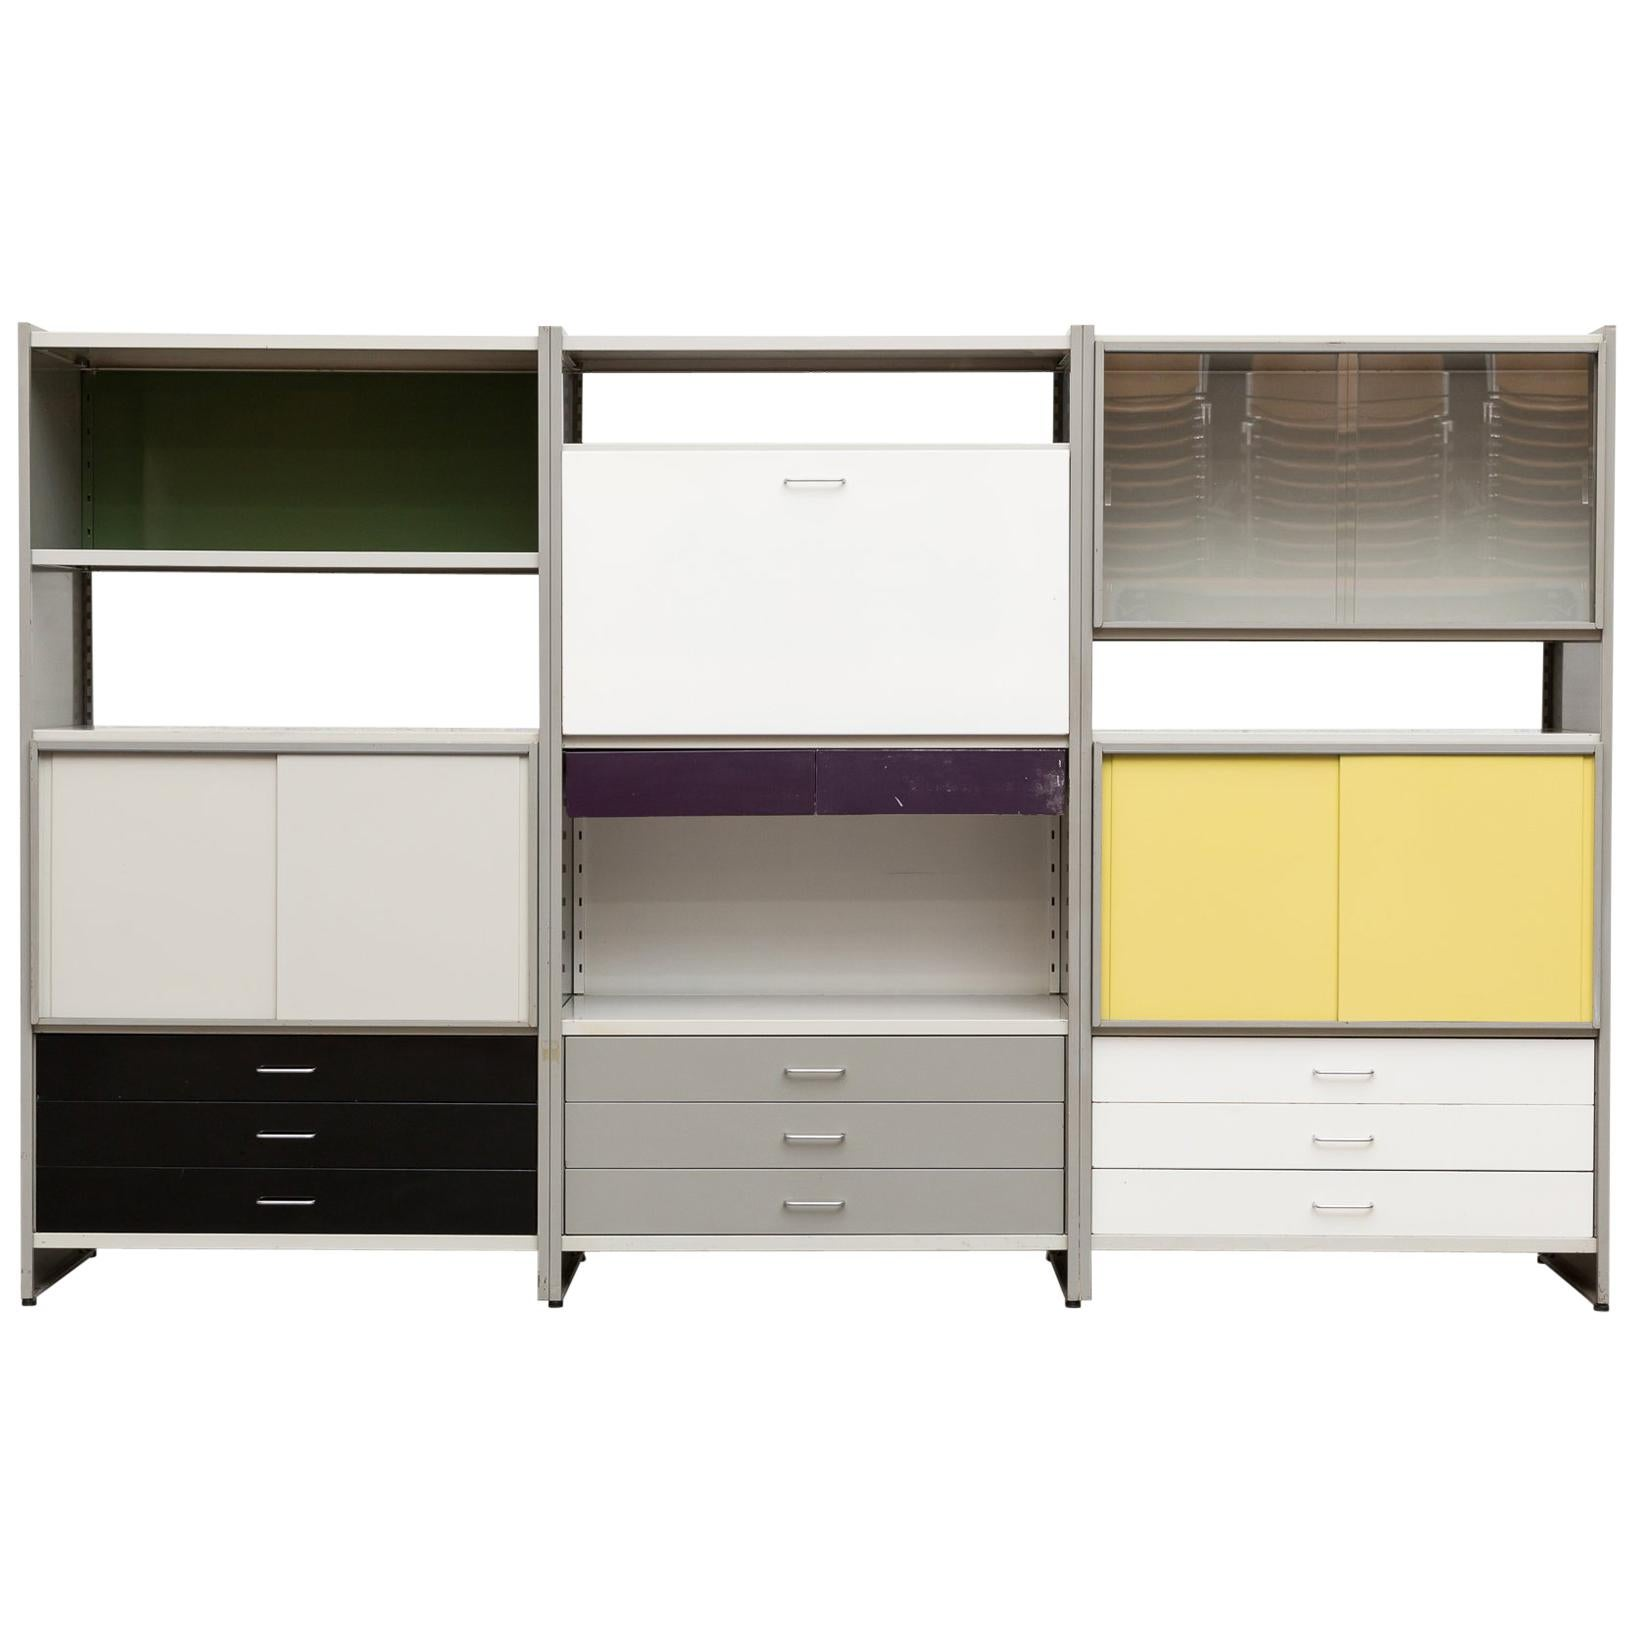 A.R. Cordemeyer Three-Section Cabinet for Gispen